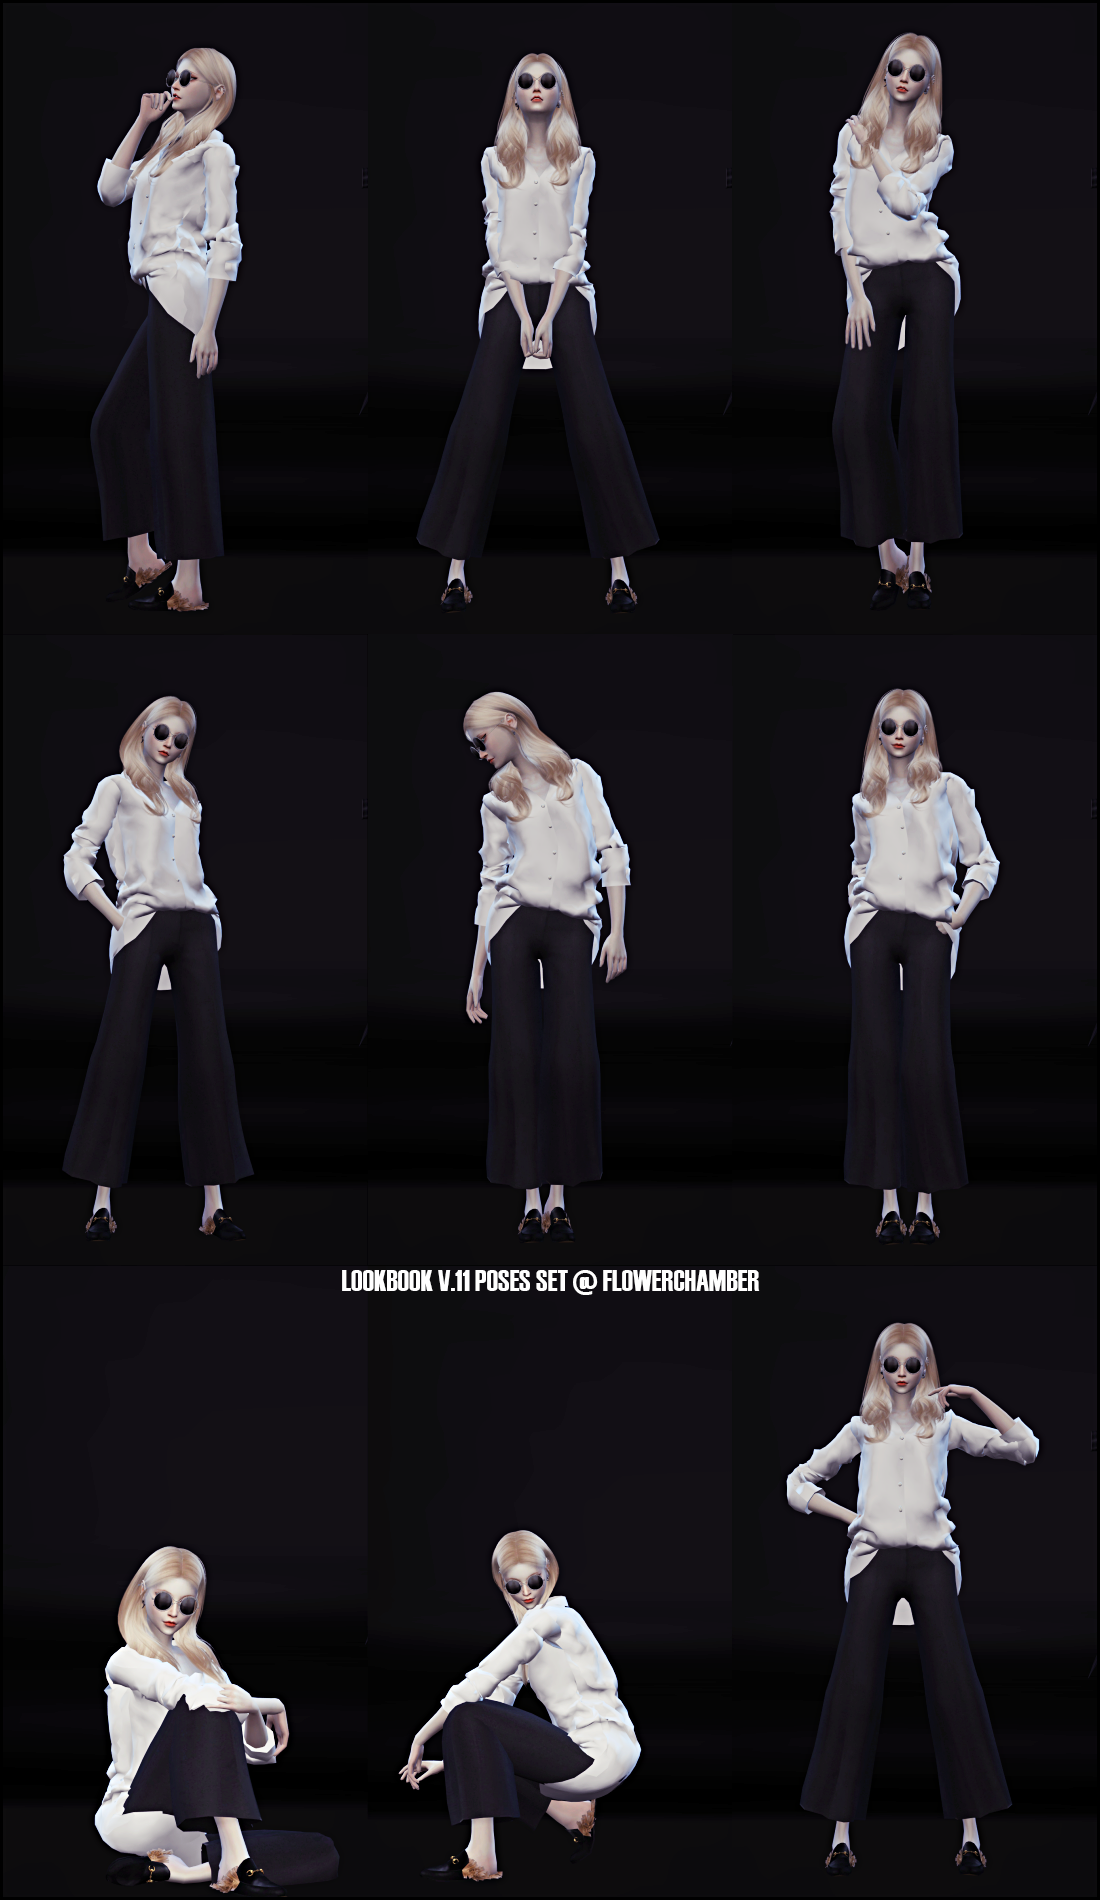 LOOKBOOK V.11 by Flower Chamber